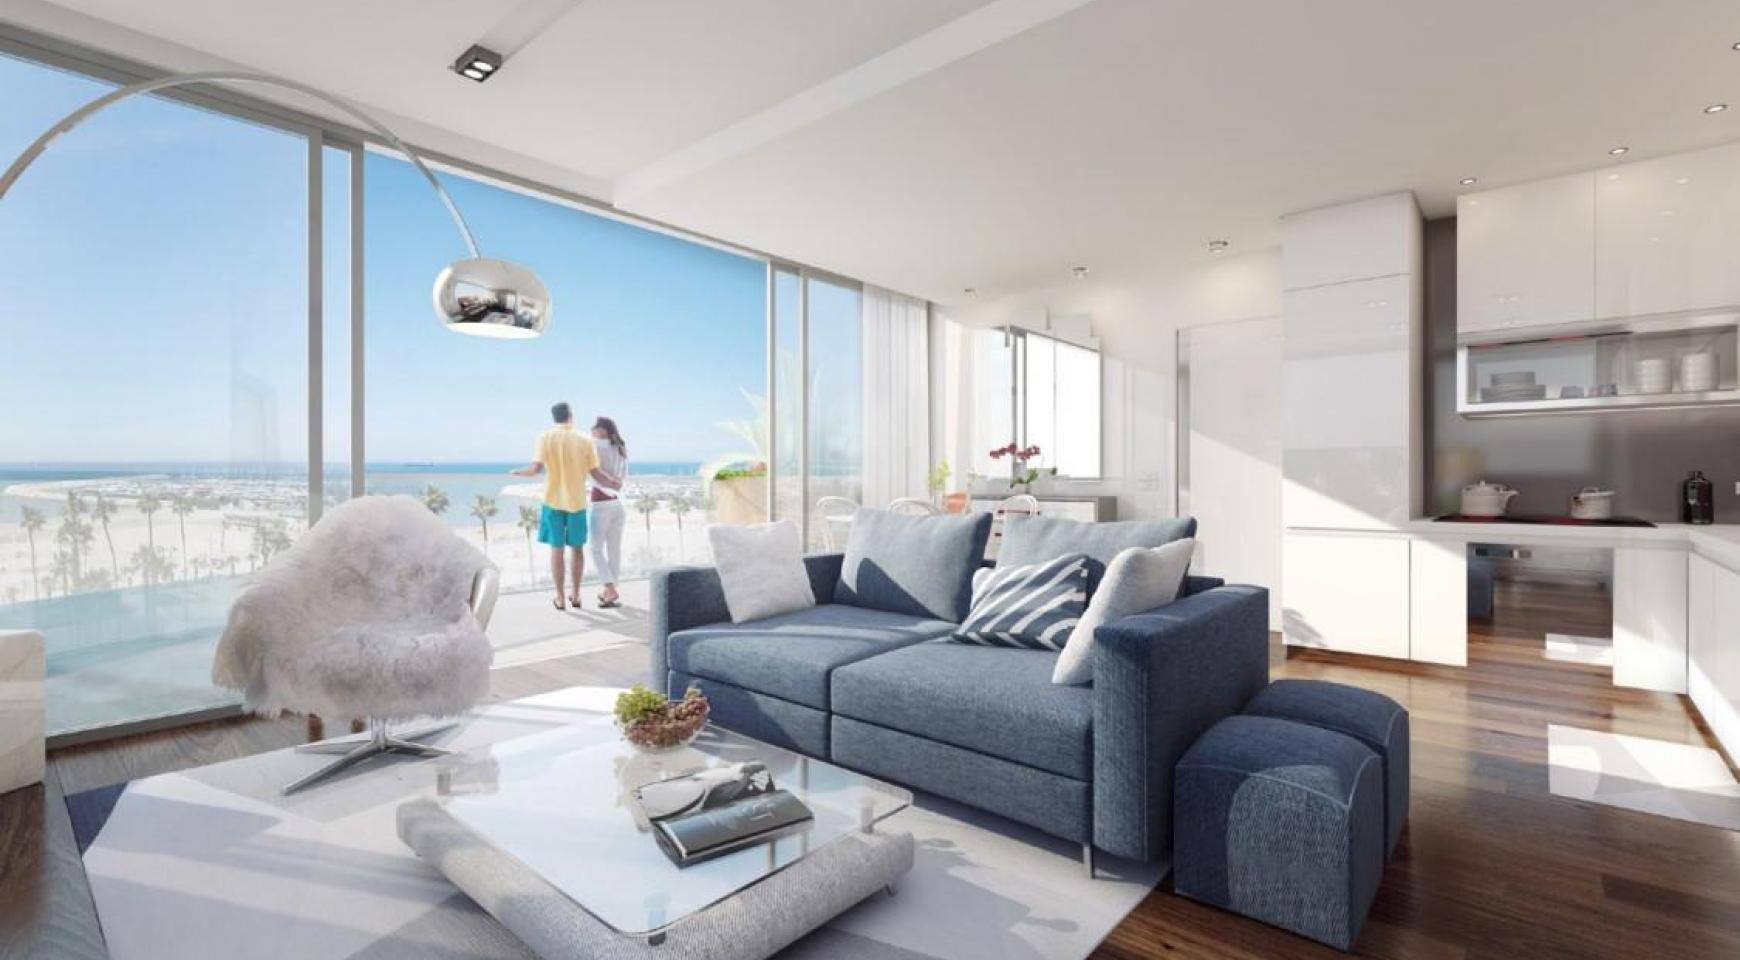 New One Bedroom Apartment near the Sea - 1